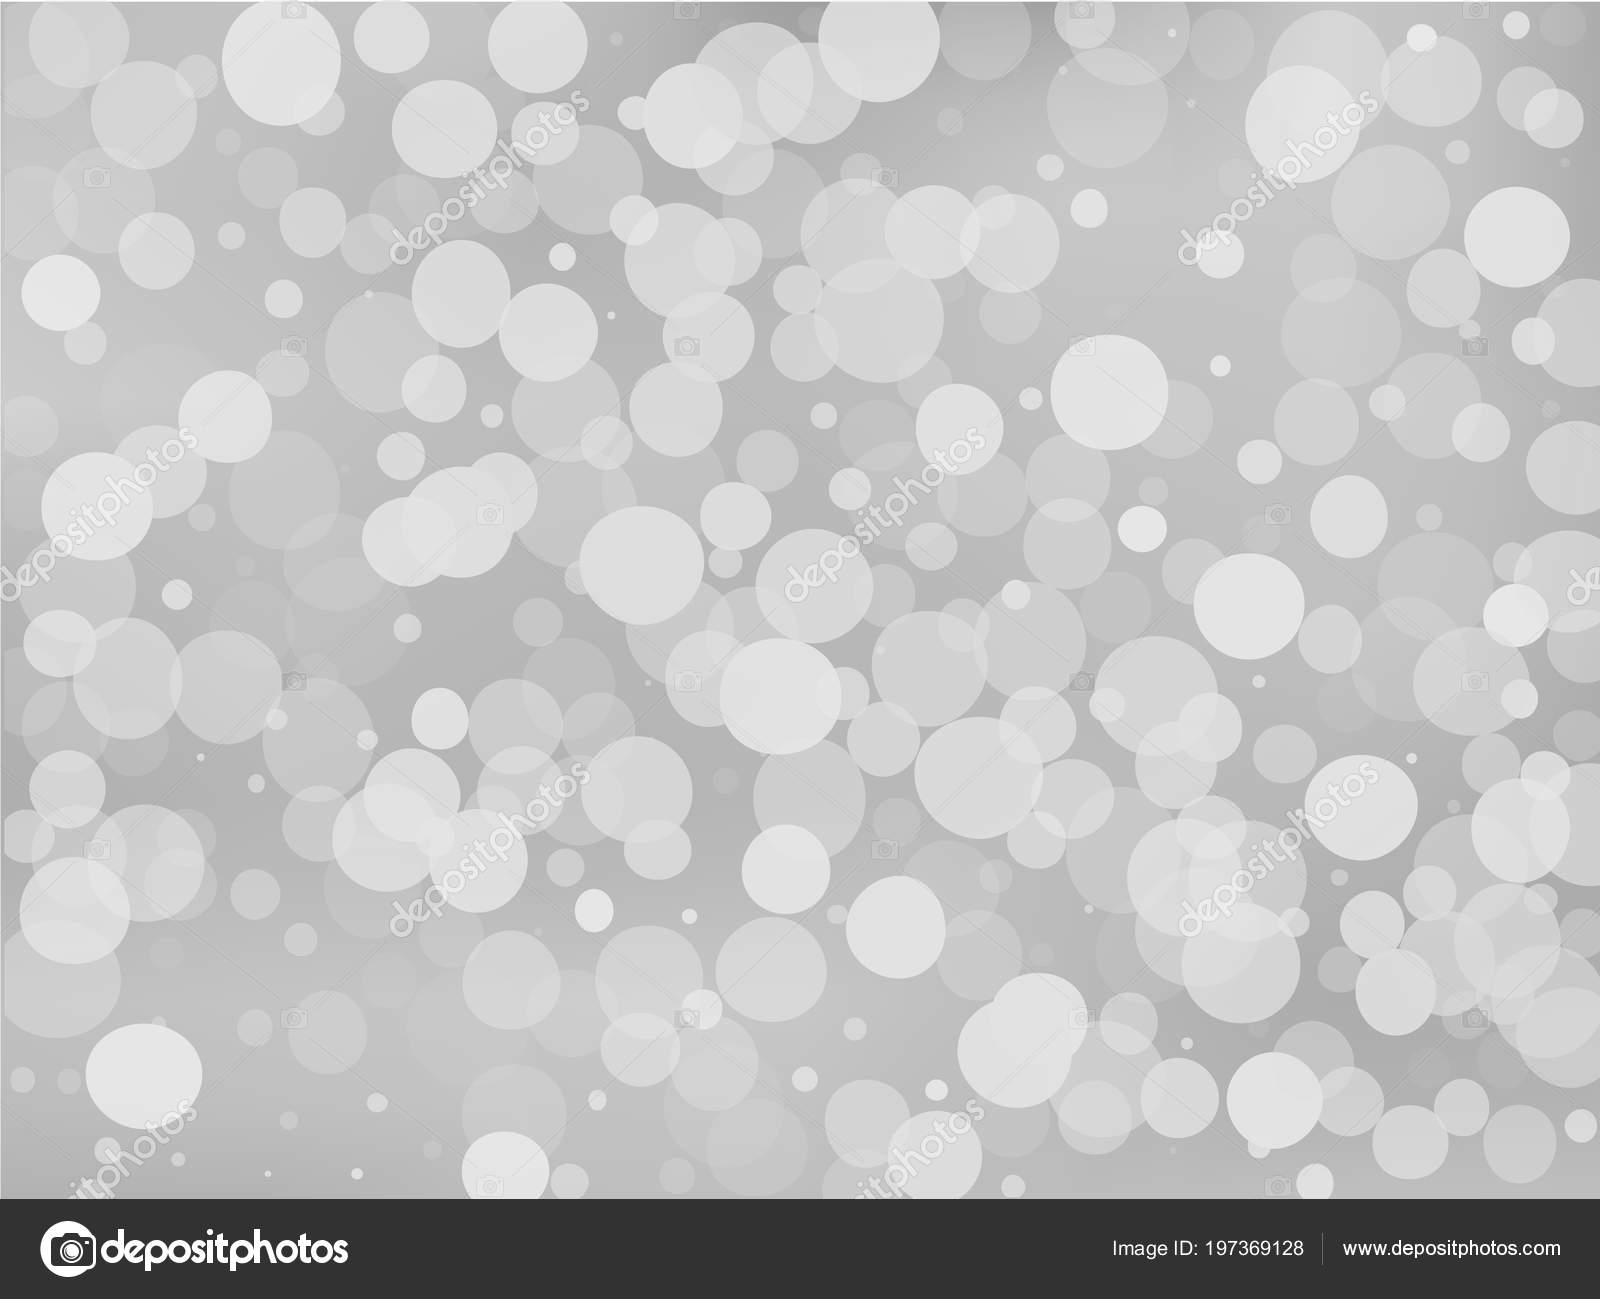 Gray White Gradient Background With Bokeh Effect Abstract Blurred Pattern Overlapping